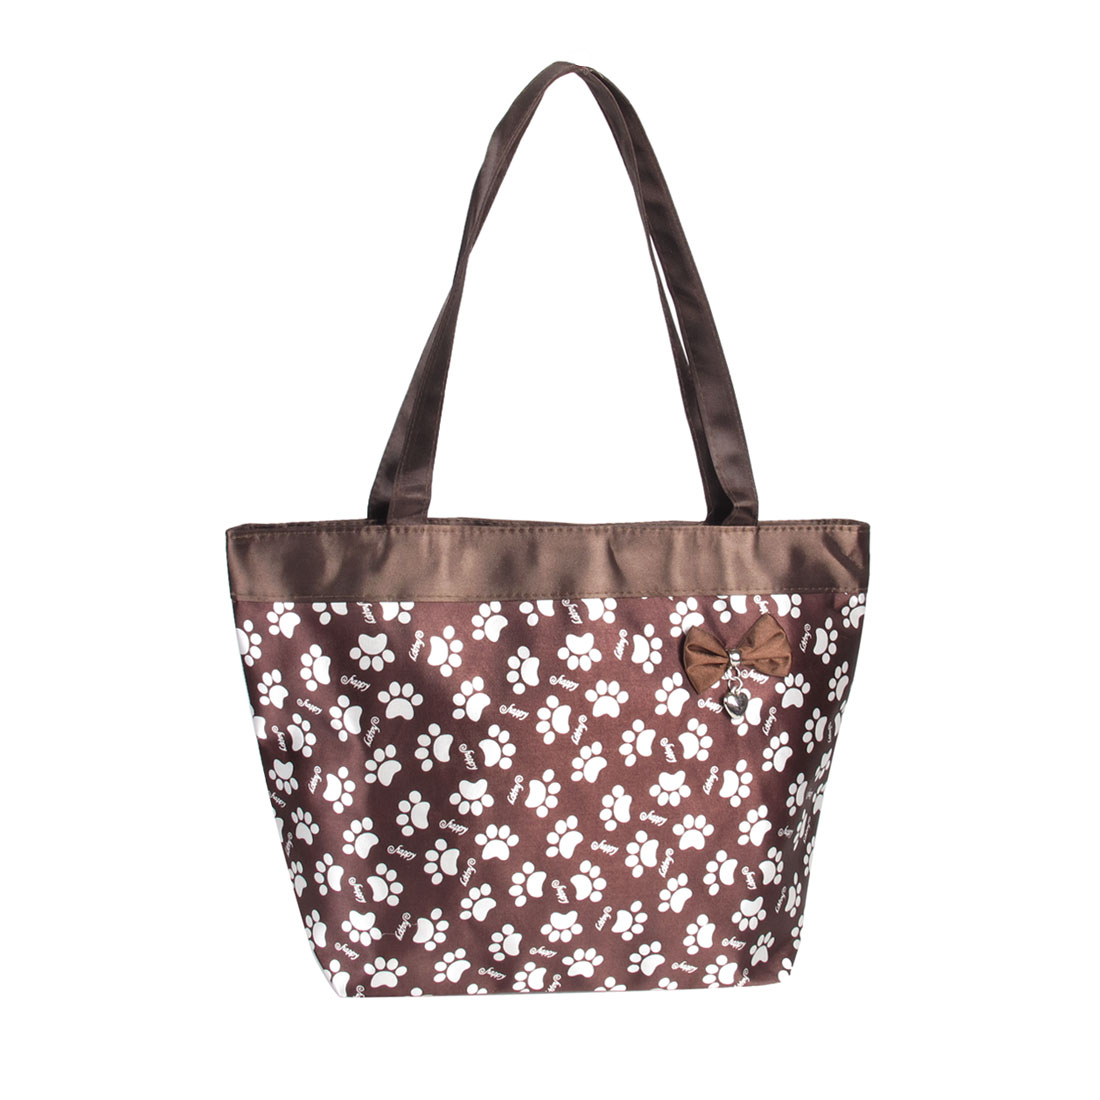 Unique Bargains Reusable Coffee Color White Happy Letter Print Zip Up Tote Shopping Handbag